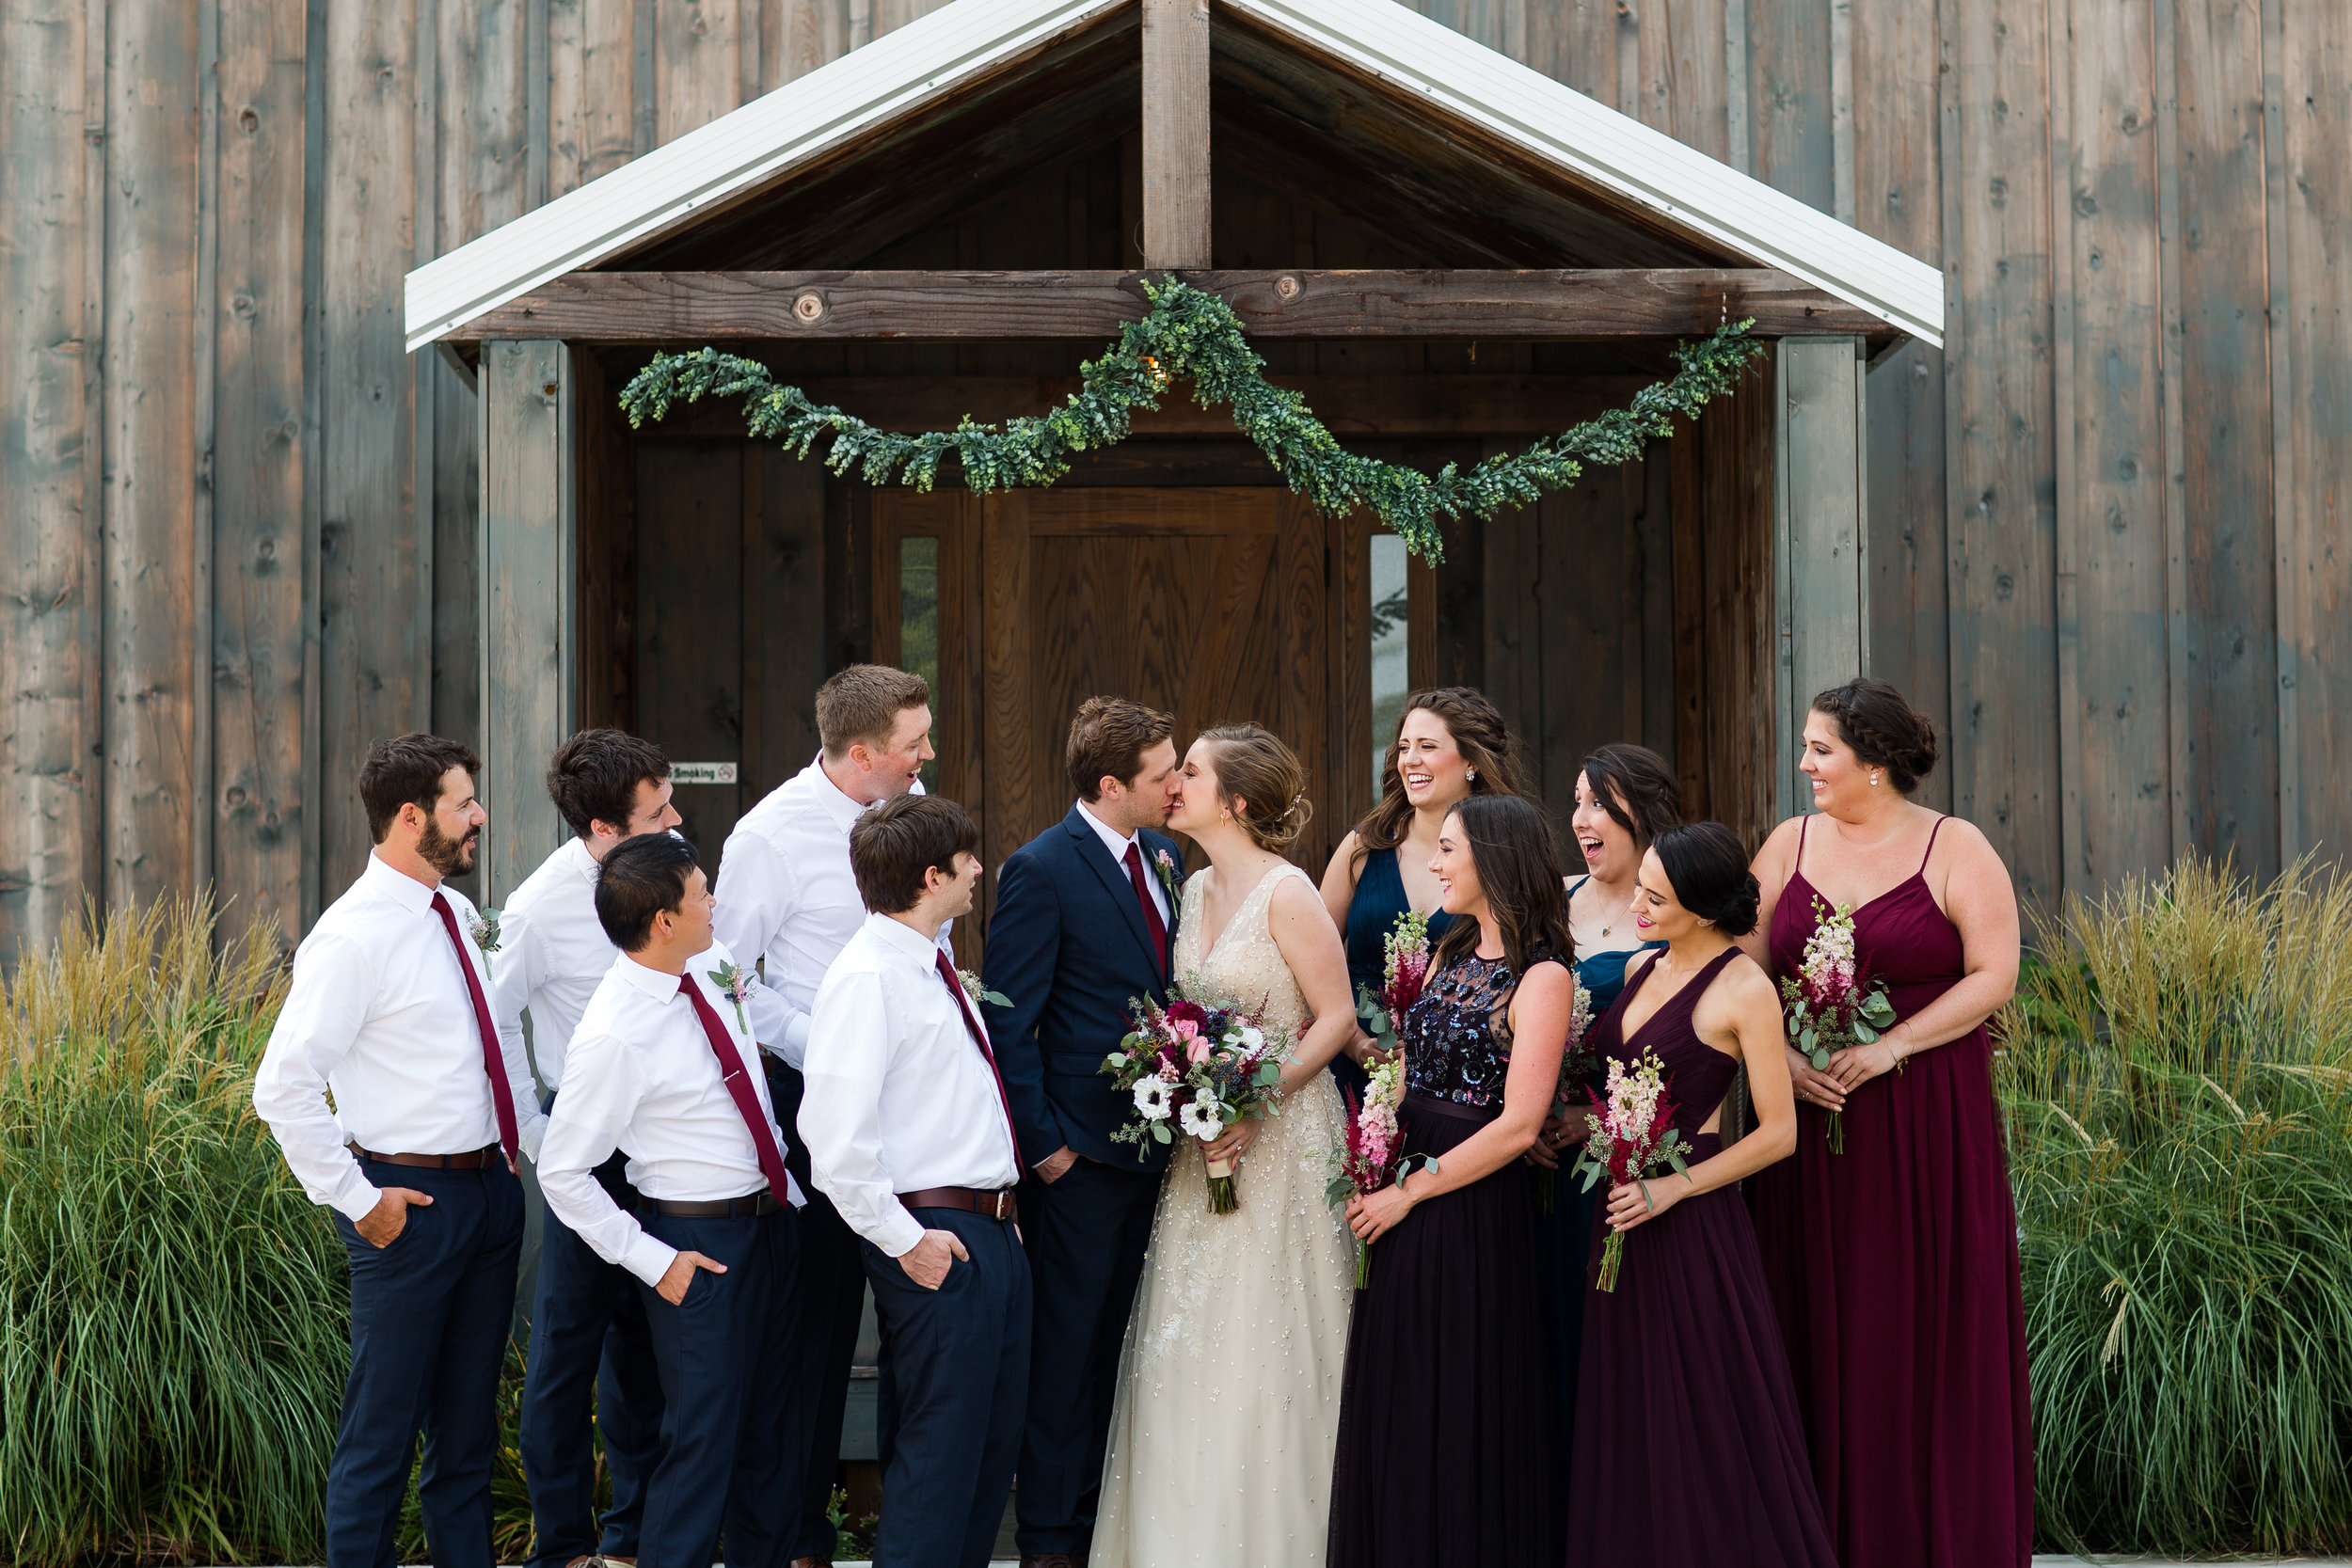 KomorebiPhotography-NewkirkWedding-2017-202.jpg